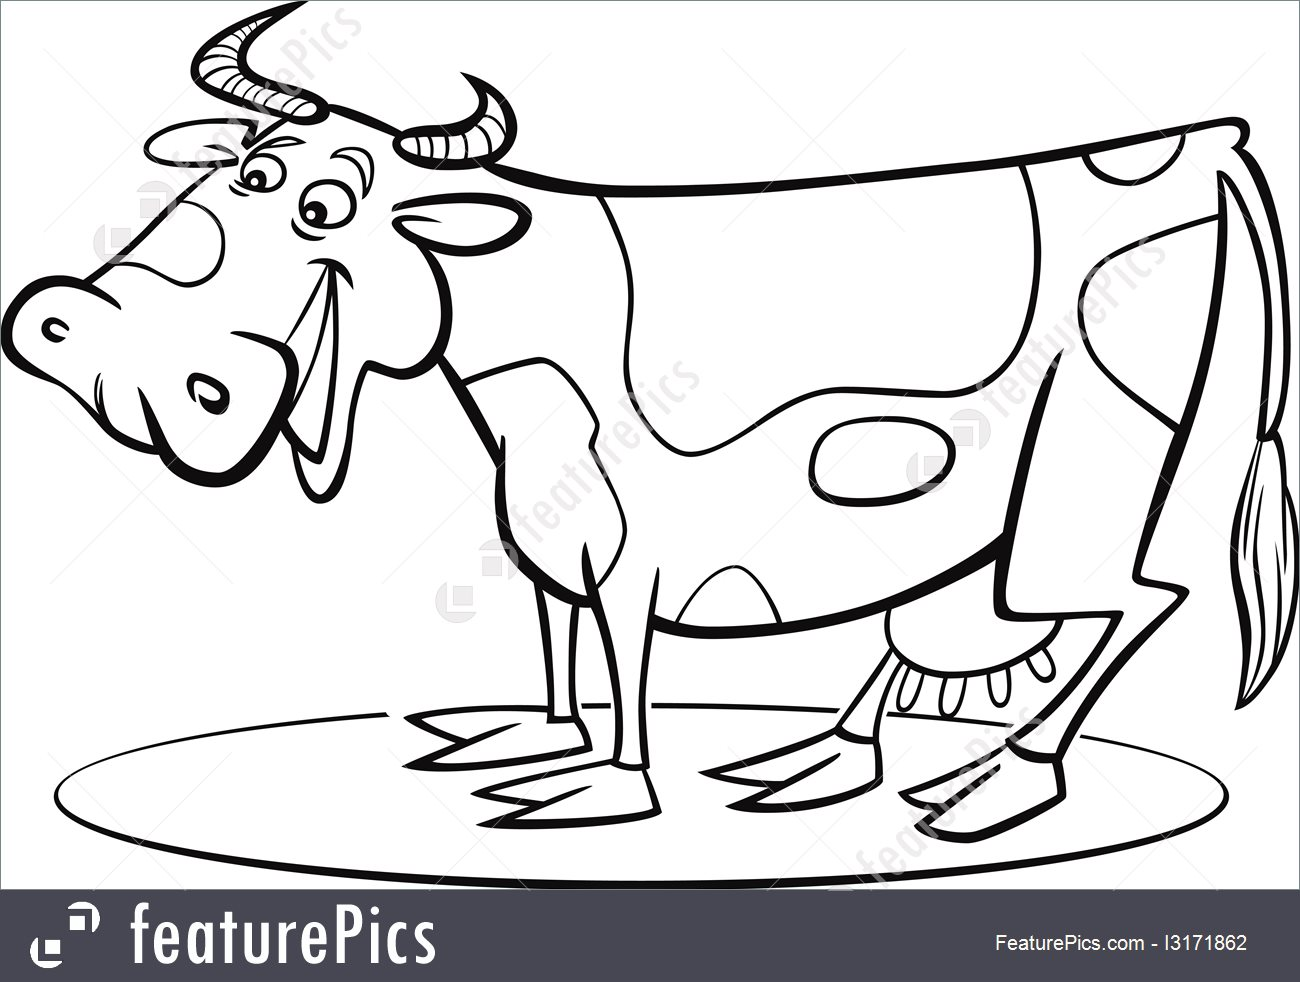 1300x982 Cartoon Cow Coloring Page Illustration